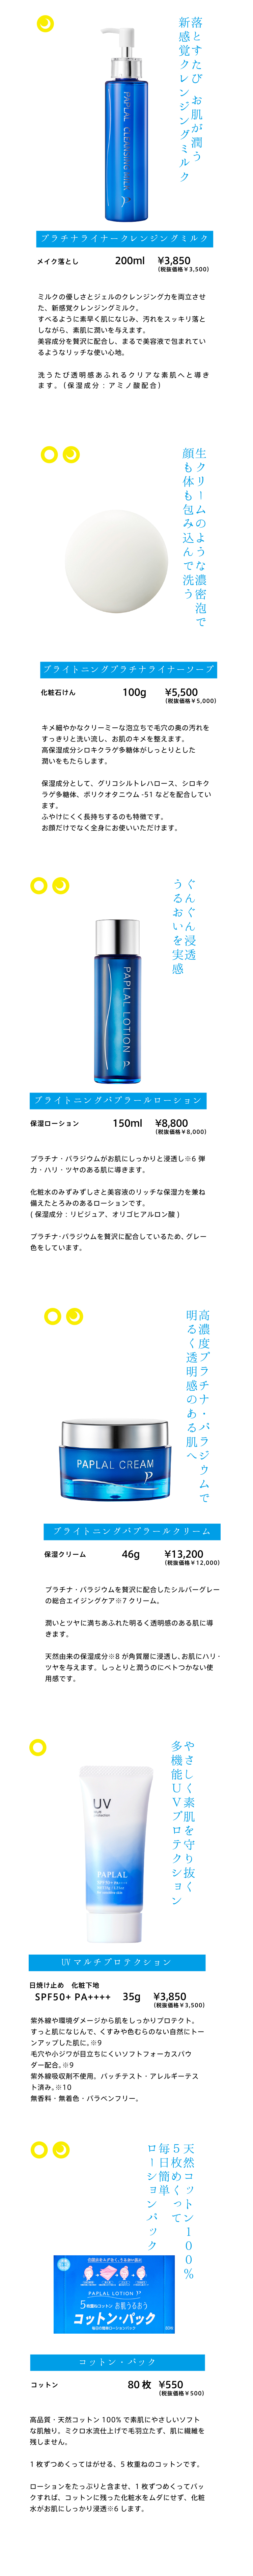 PAPLALcosmeticシリーズ商品一覧